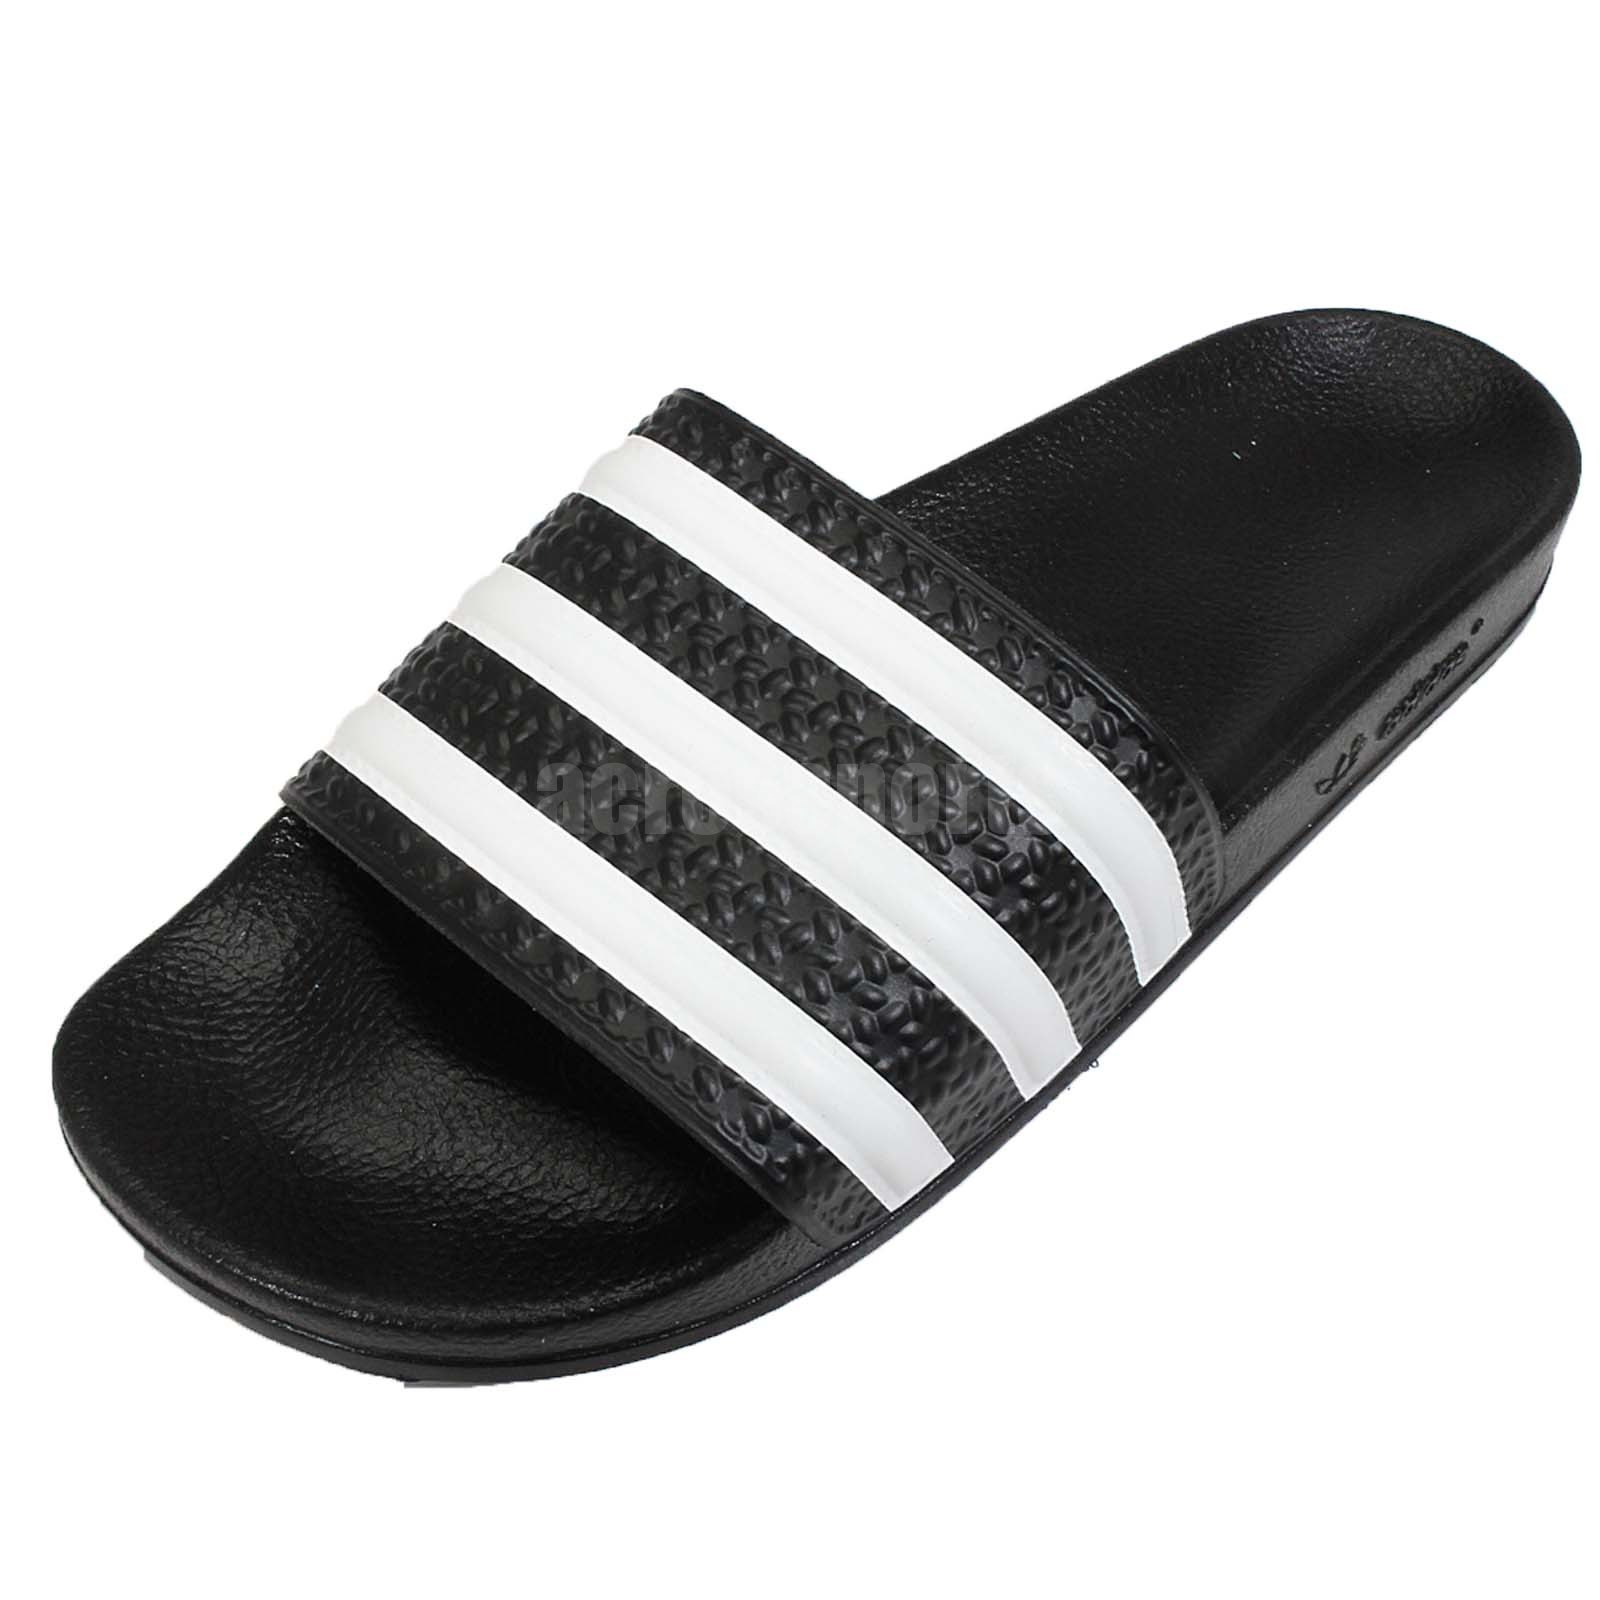 Brilliant Adidas Originals Adilette Supercloud Plus Grahpic Womens Slides Sandal S78041 | EBay